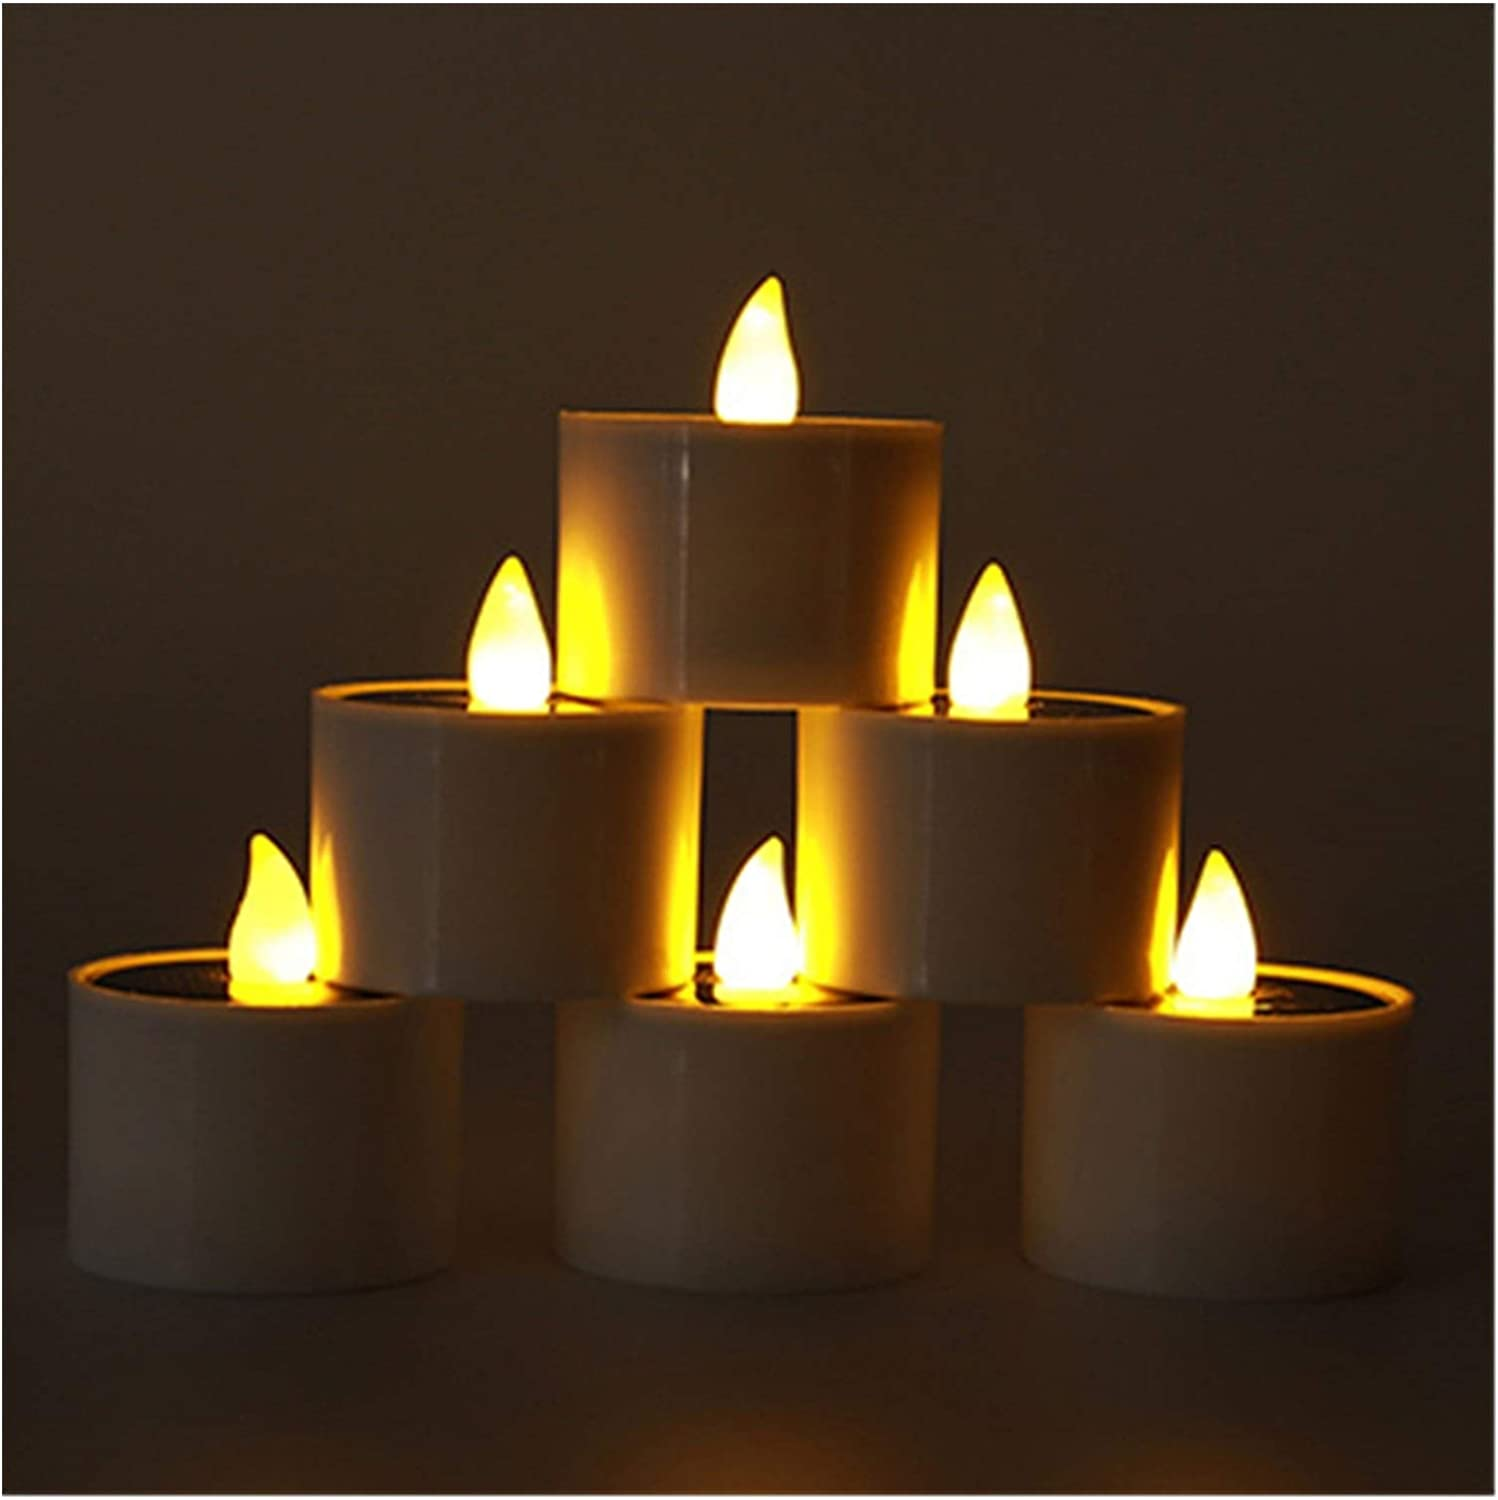 Jgzwlkj Candle Lights Solar Candles Lamp Popular brand in the world Elect Washington Mall Flickering